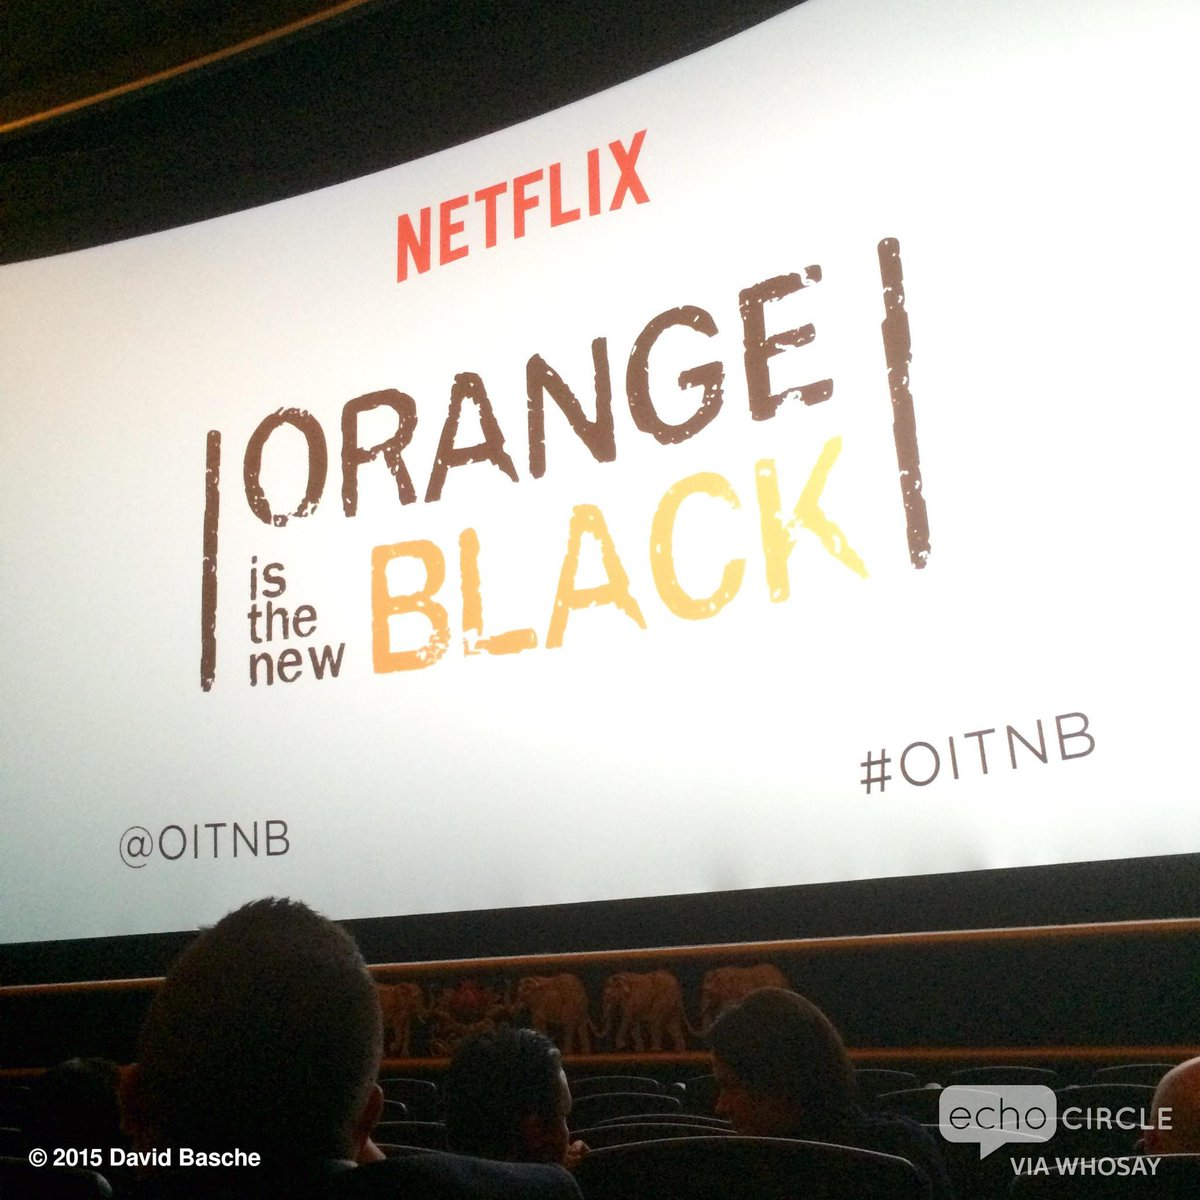 At the cast & crew screening of @OITNB season 3! Gonna be quite a week, @alysiareiner #OITNB http://t.co/0umBWNdN1y